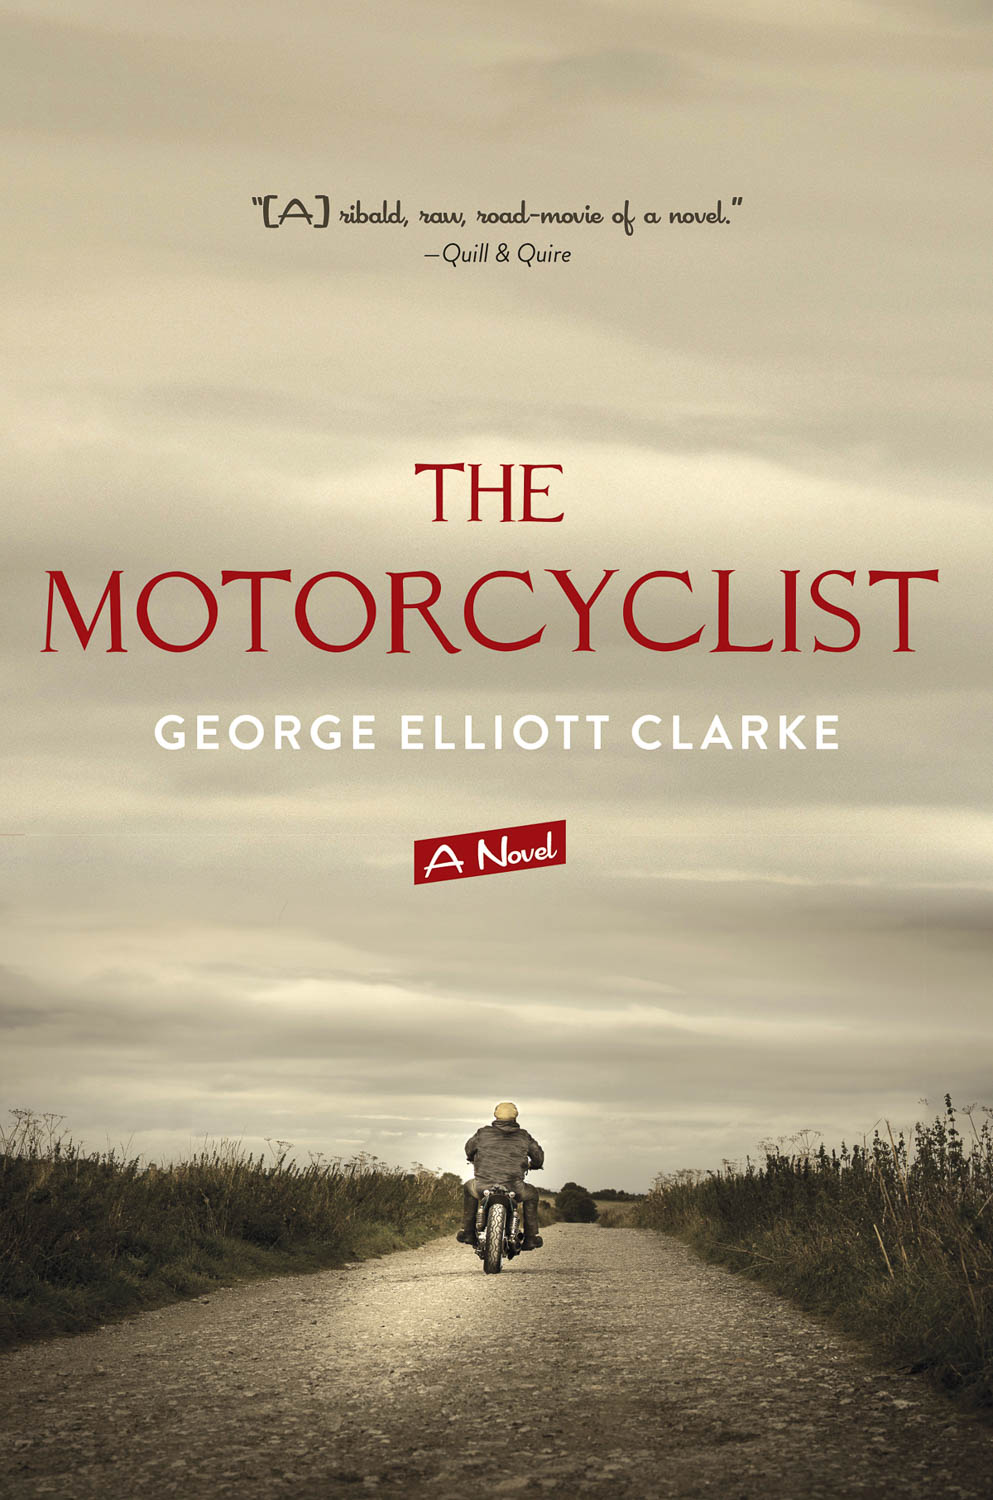 Clarke, The Motorcyclist Book Cover Photograph by Wolf Kettler